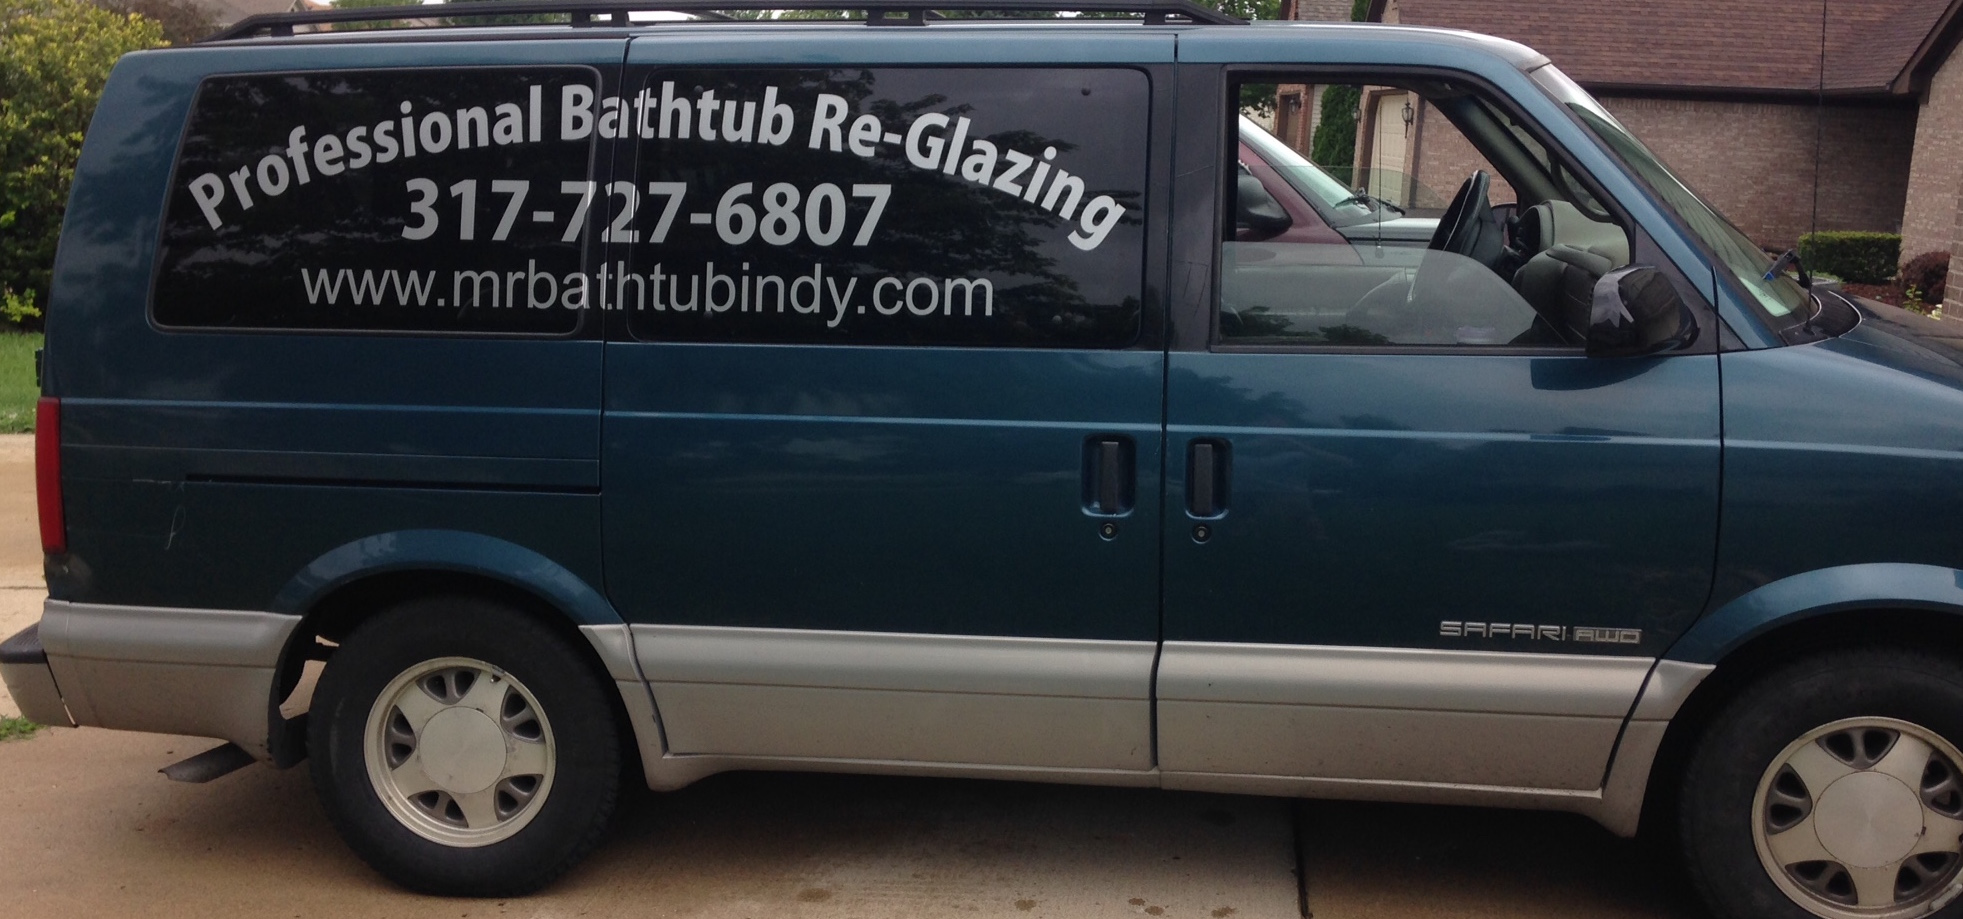 Mr. Bathtub Is Indianapolisu0027 Best Choice For Quality Bathtub Re Glazing And  Restoration.